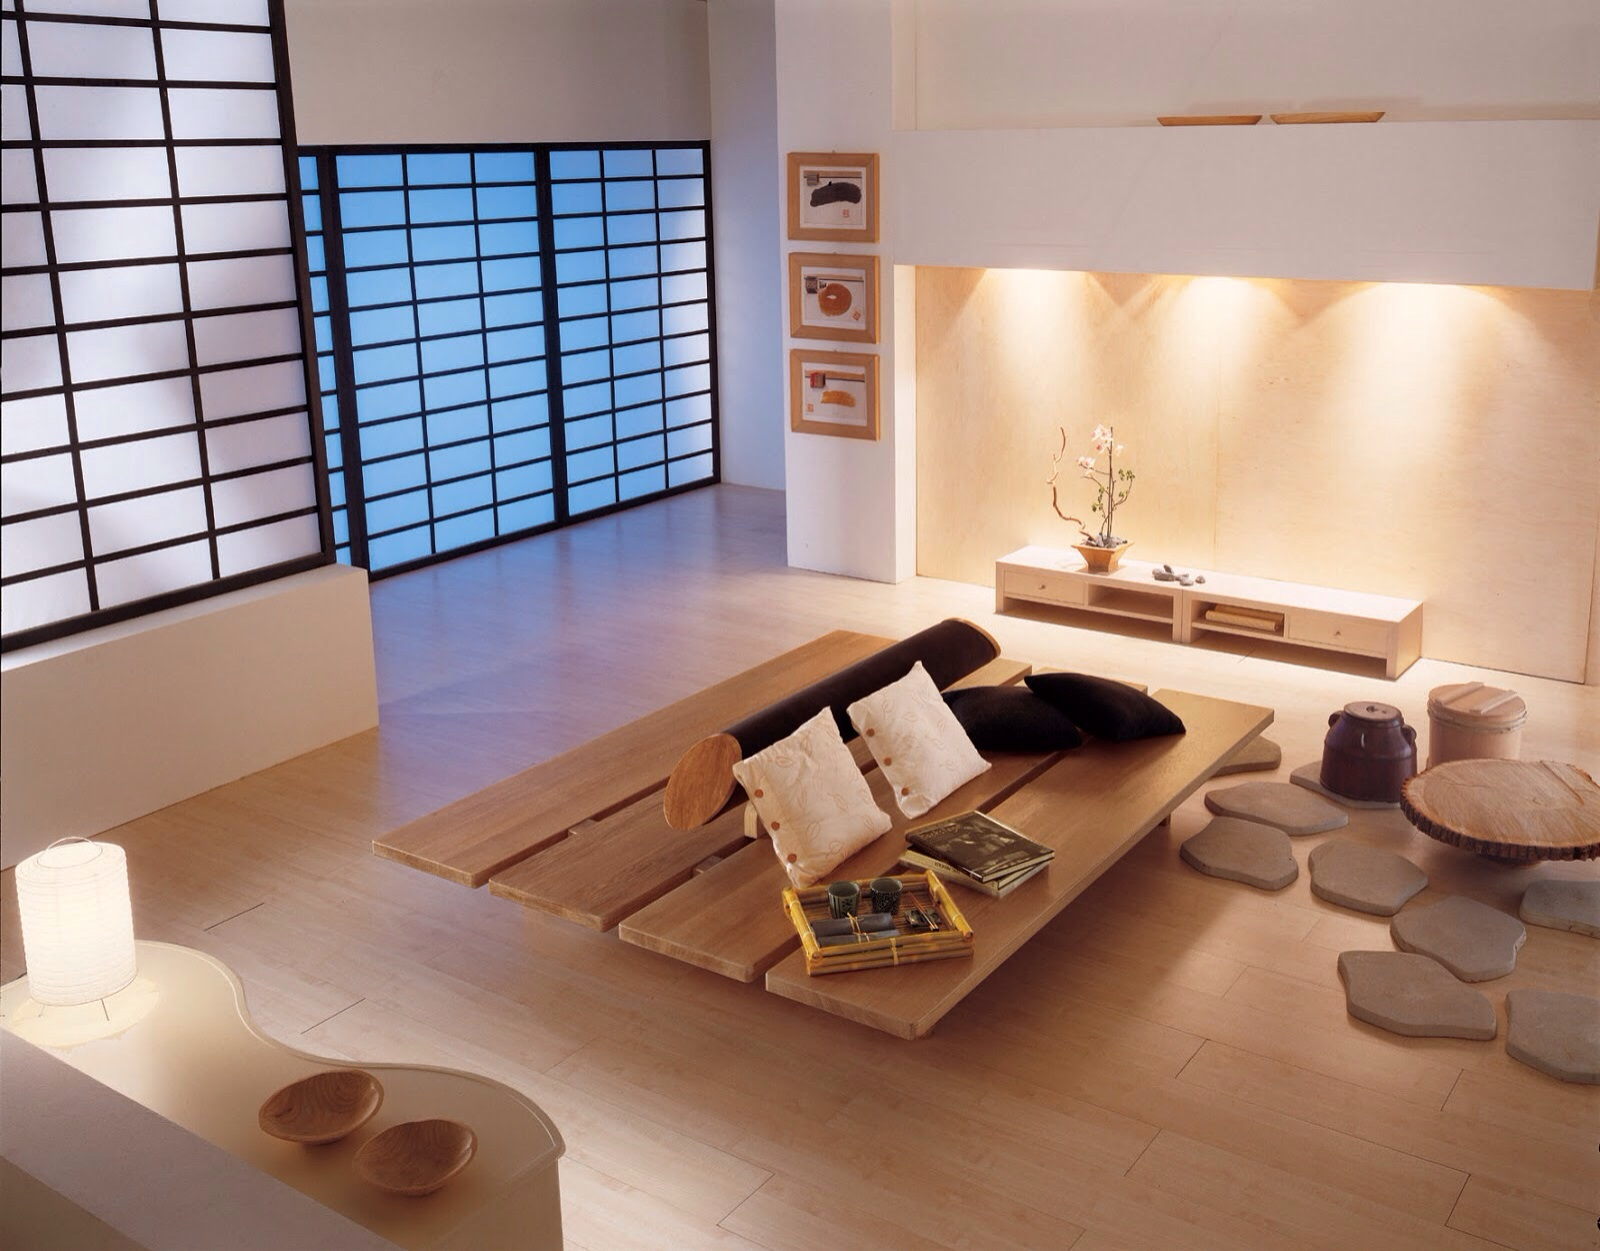 Living Room Zen Design zen inspired interior design